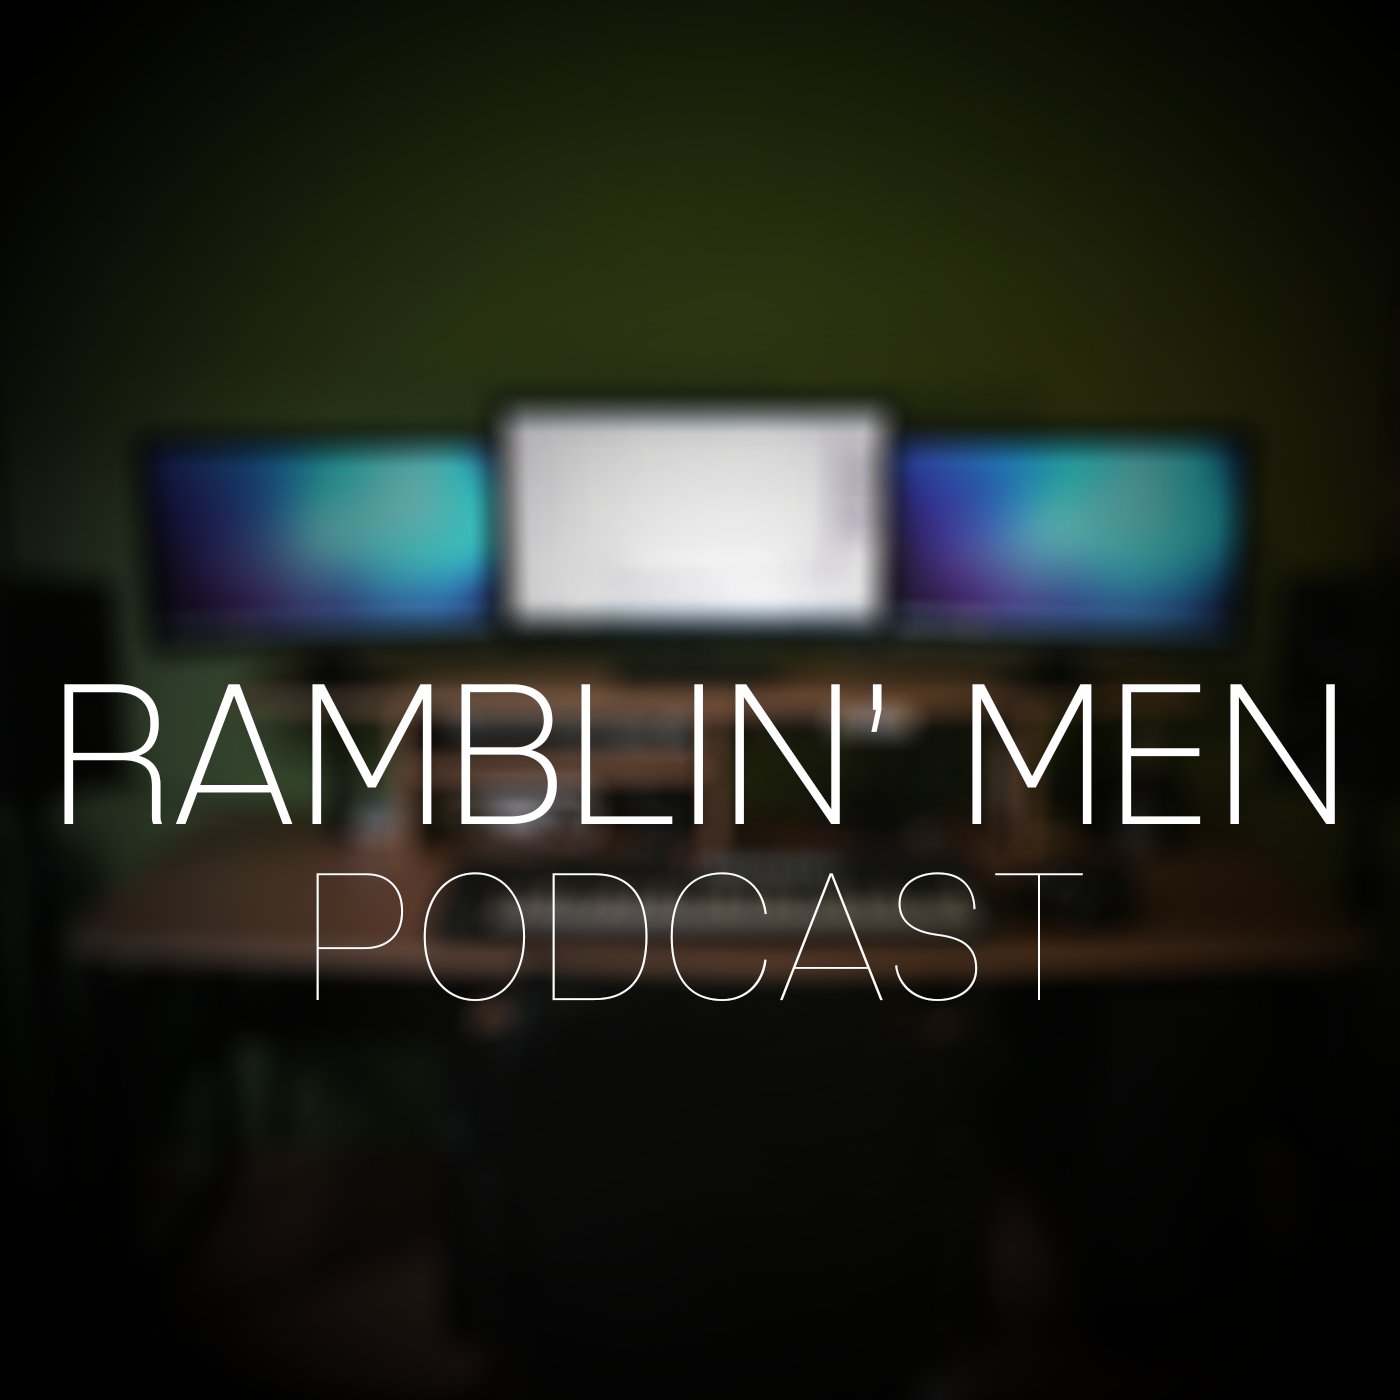 Ramblin' Men Podcast